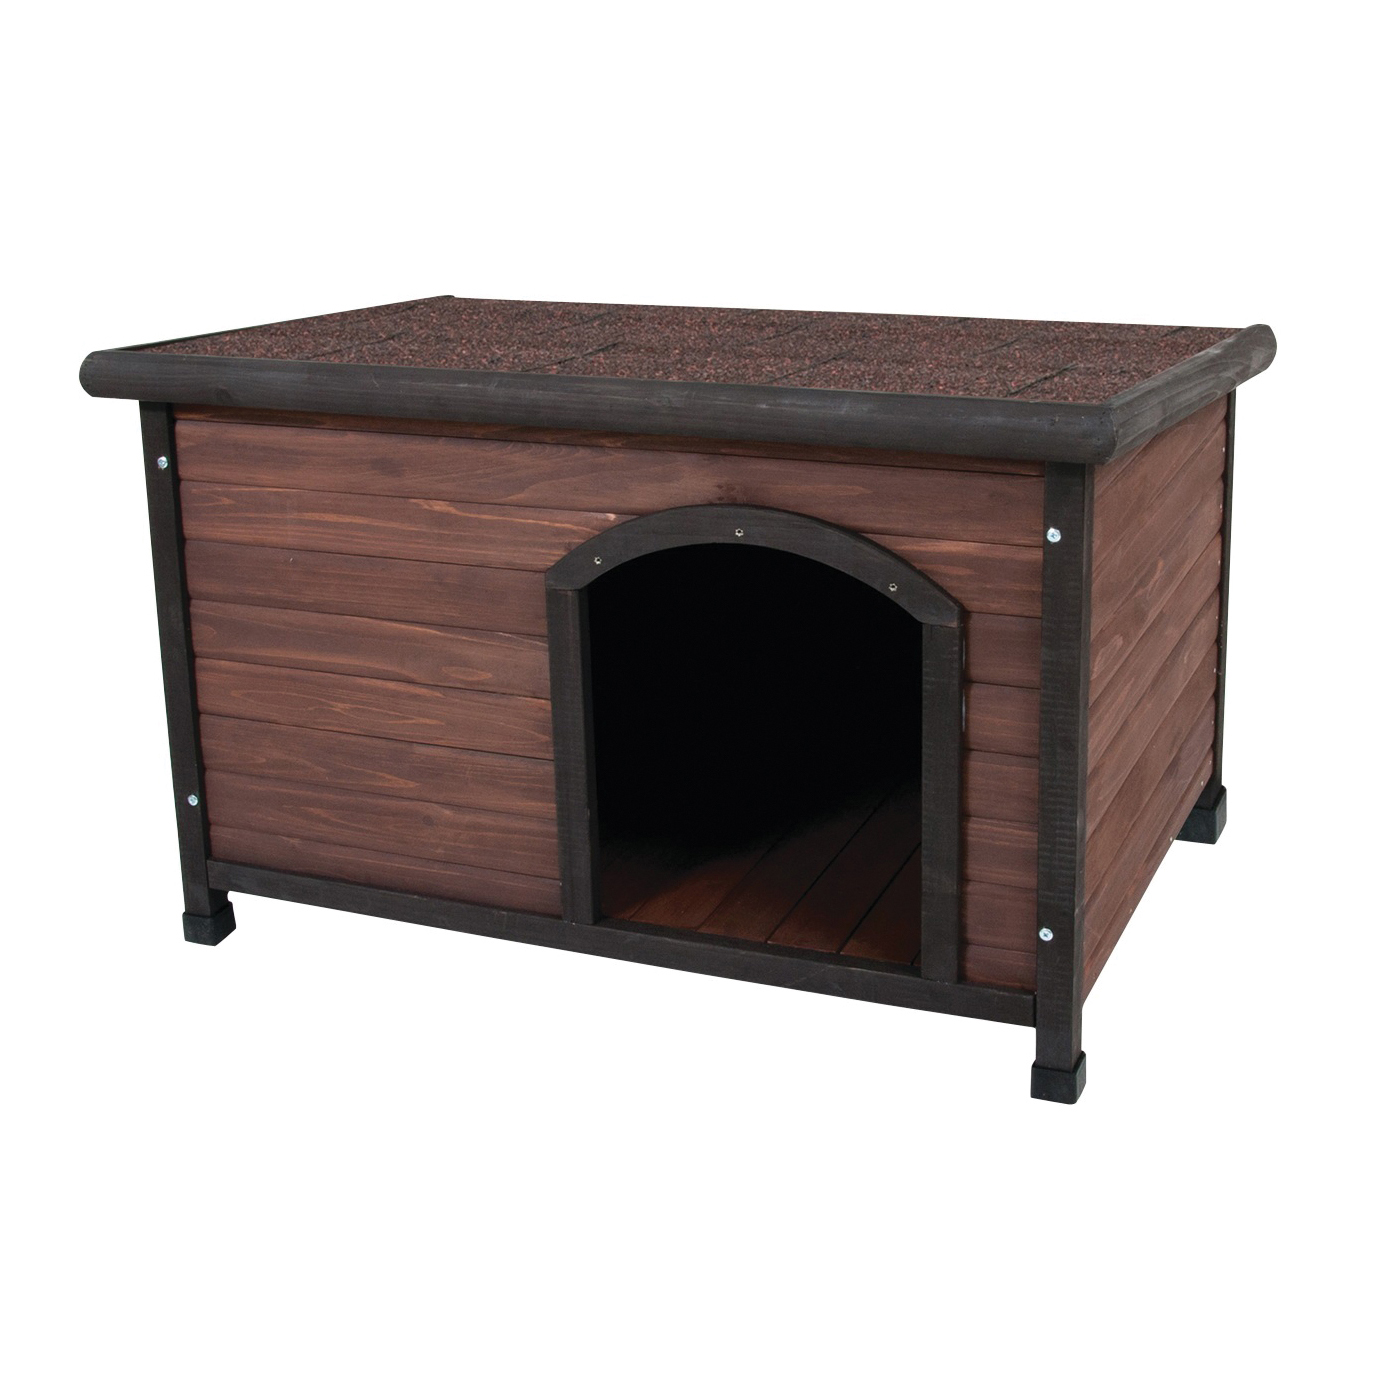 Picture of Aspenpet Ruff Hauz 25040 Dog House, 45-1/2 in OAL, 31 in OAW, 32.3 in OAH, Solid Wood, Dark Brown